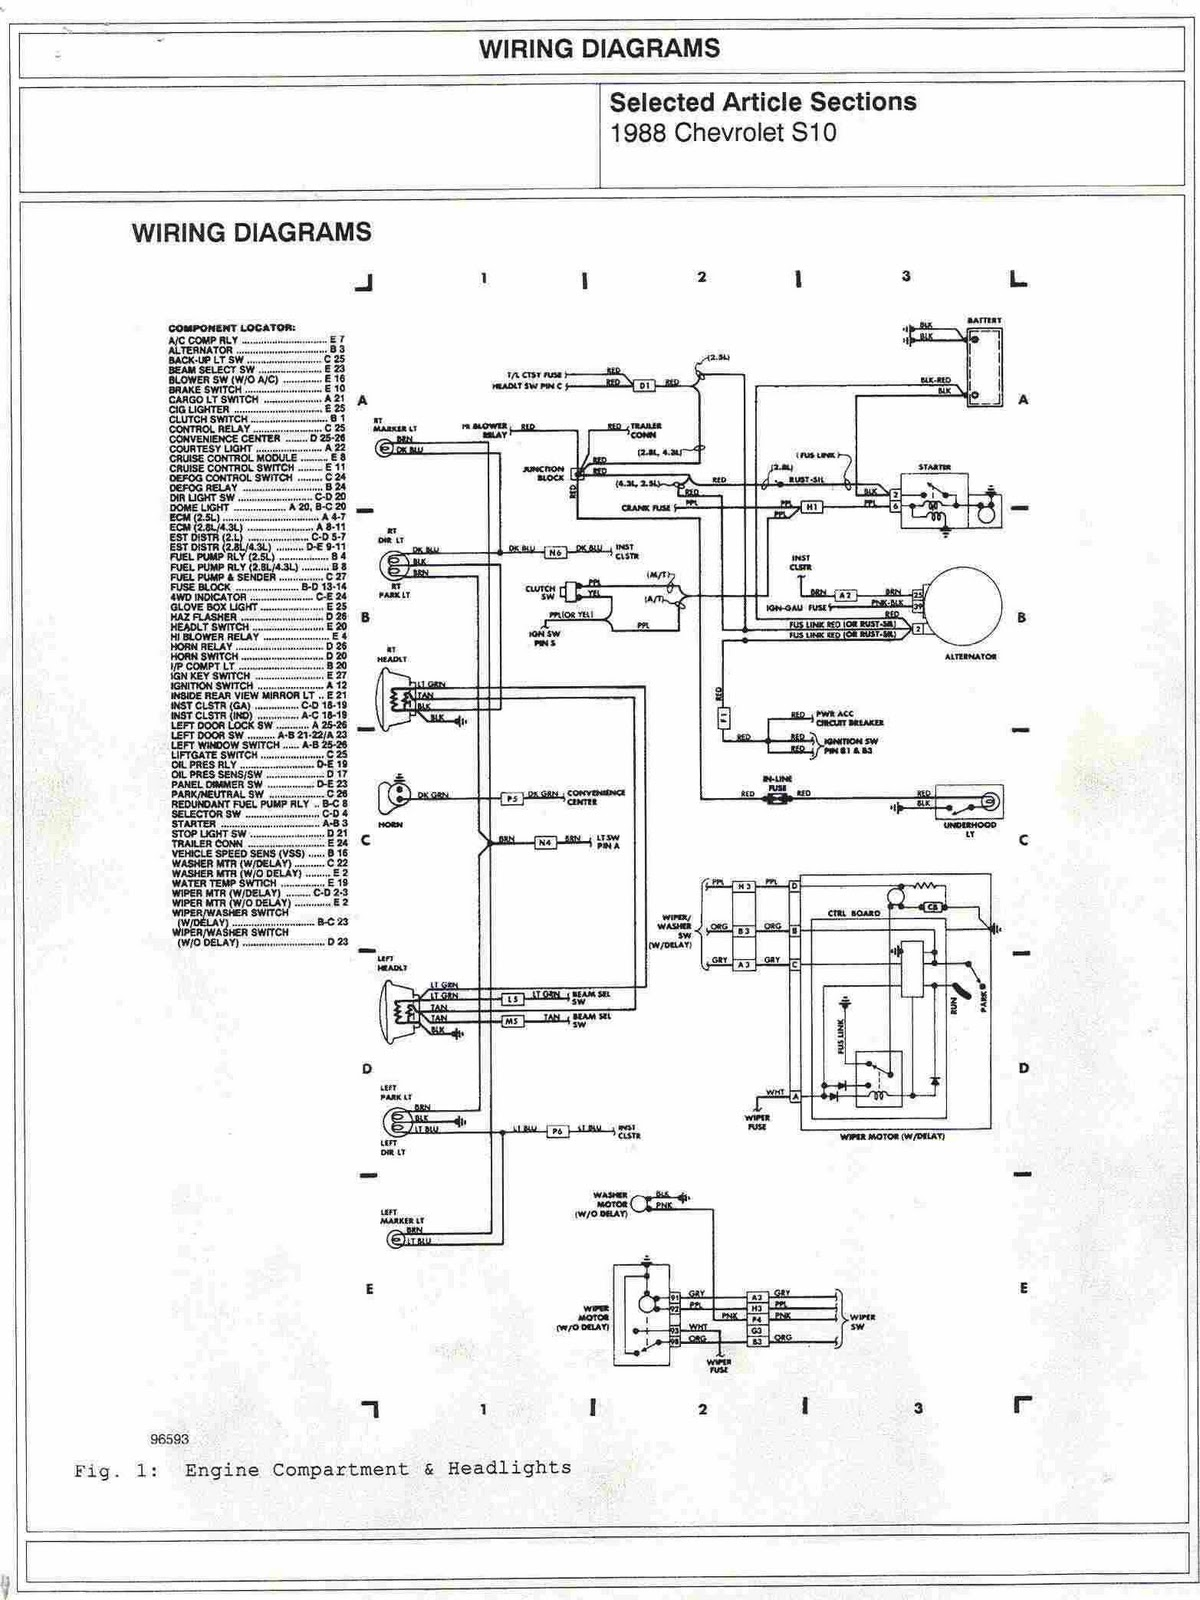 1988+Chevrolet+S10+Engine+Compartment+and+Headlights+Wiring+Diagrams 1988 chevy truck wiring diagram truck wiring schematics \u2022 wiring 66 C10 Chevy Truck Ignition Switch at aneh.co